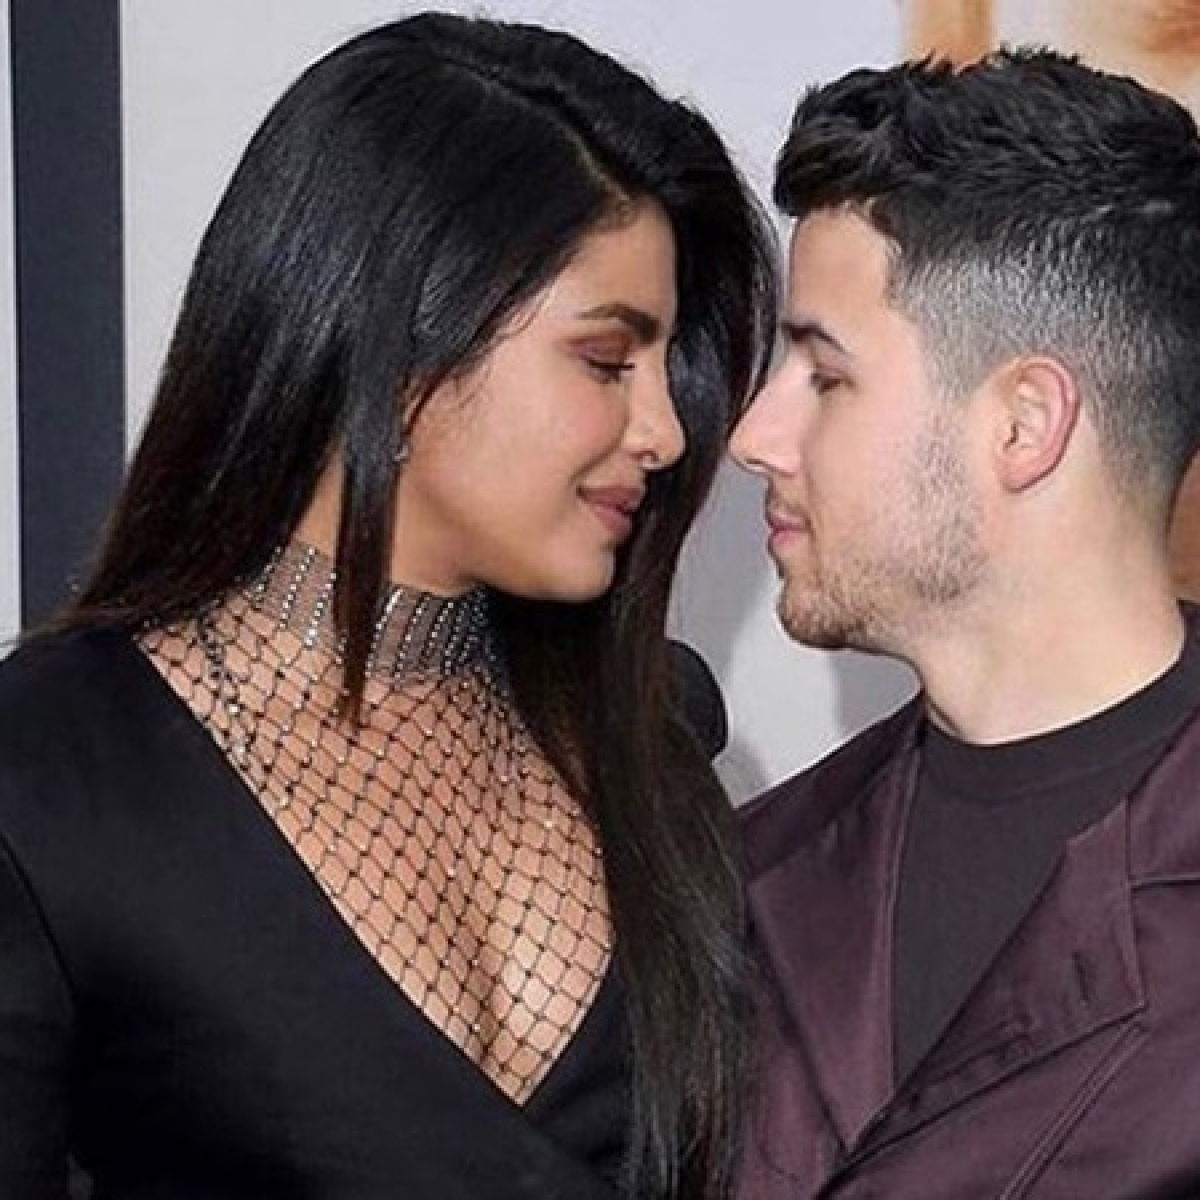 Priyanka Chopra, Nick Jonas set for a special appearance at Global Citizen Prize Awards